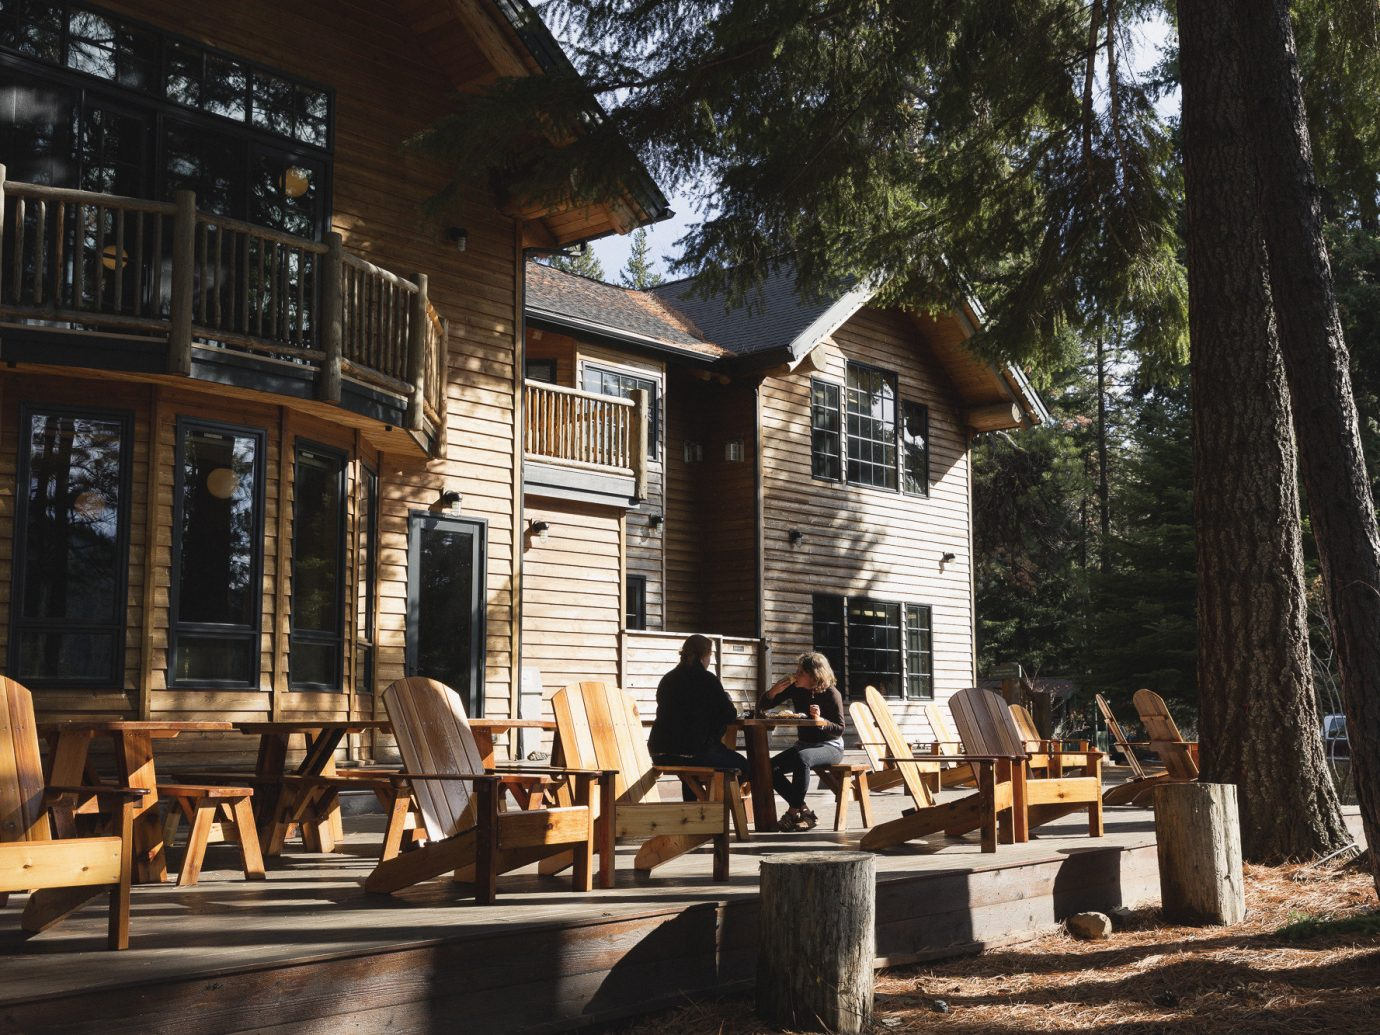 Hotels tree outdoor house wooden home wood furniture